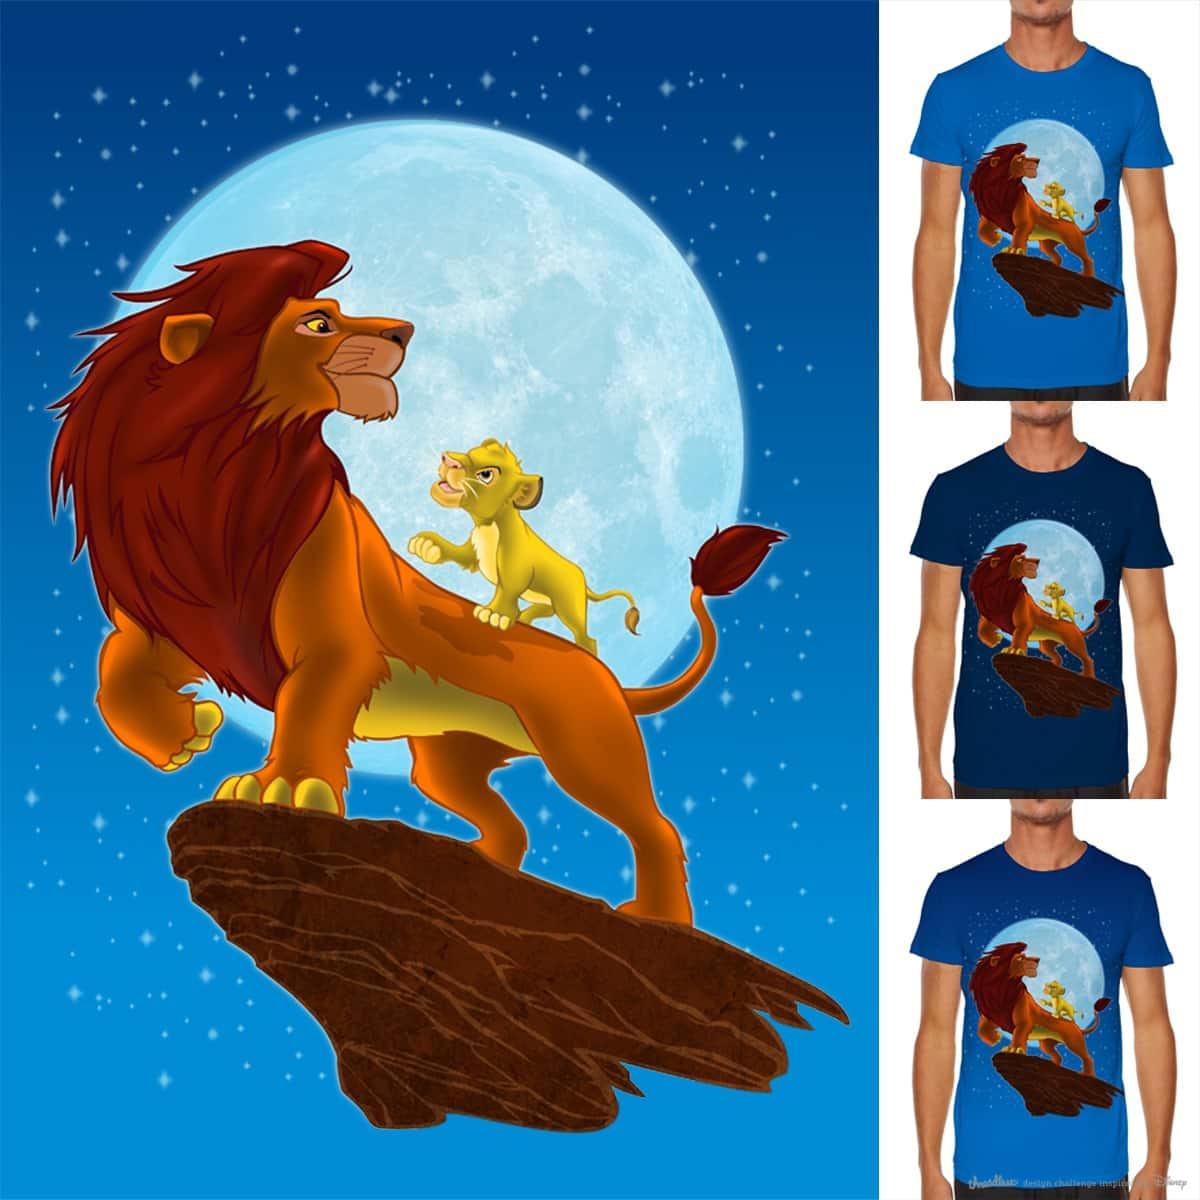 Stories Beneath the Moon by JohnthanFlores on Threadless